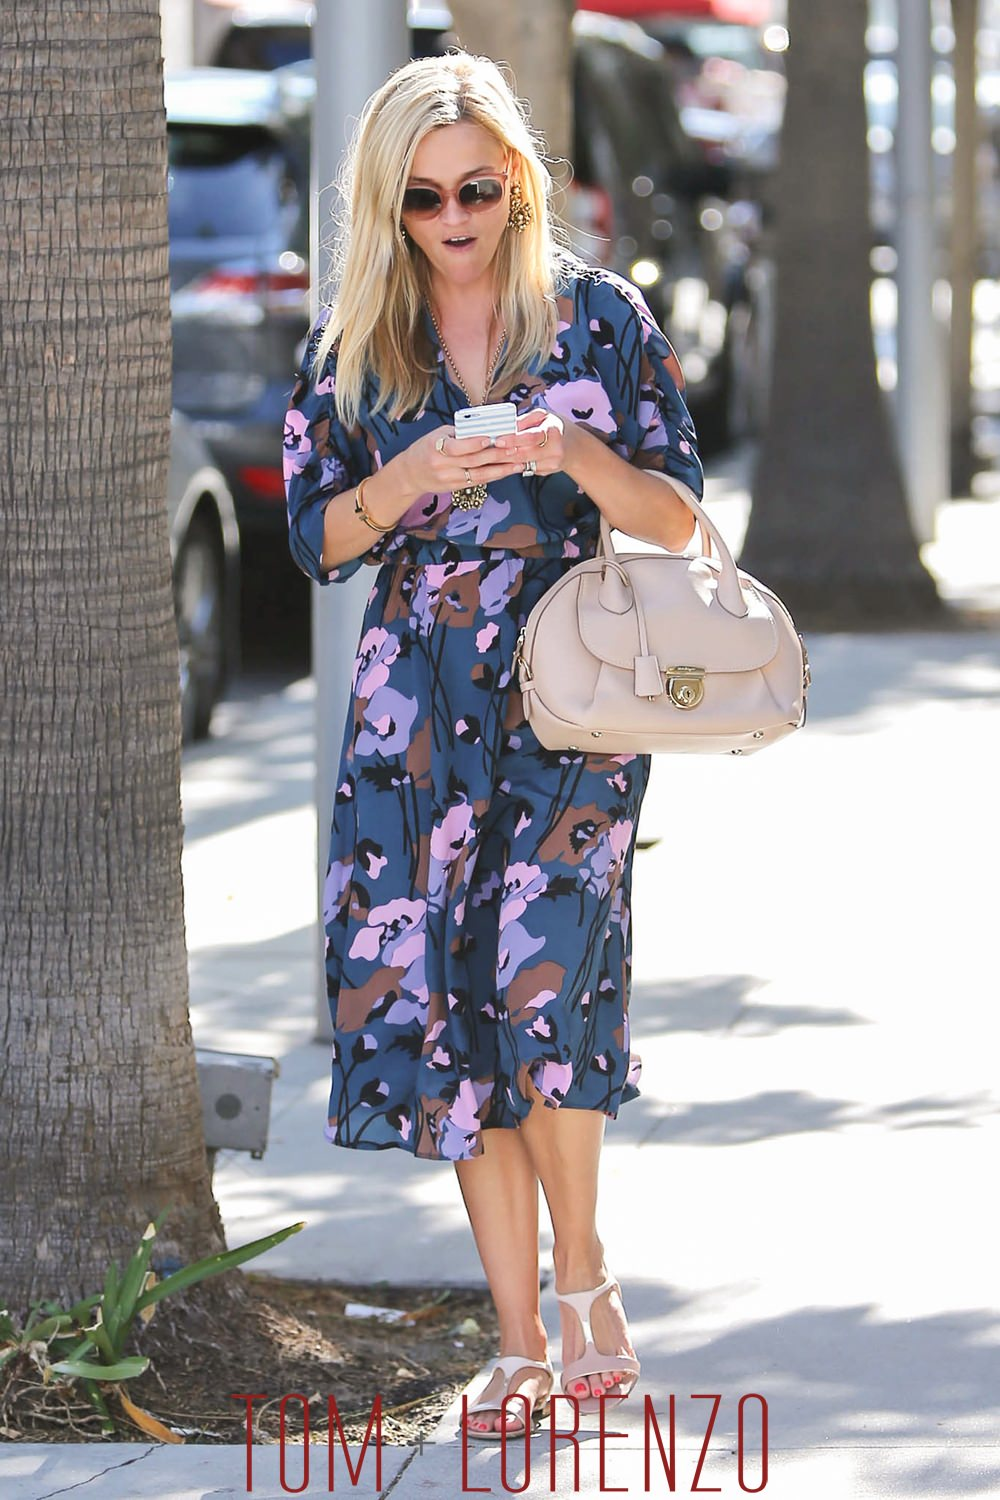 Reese Witherspoon Stops By Cartier In La Tom Lorenzo